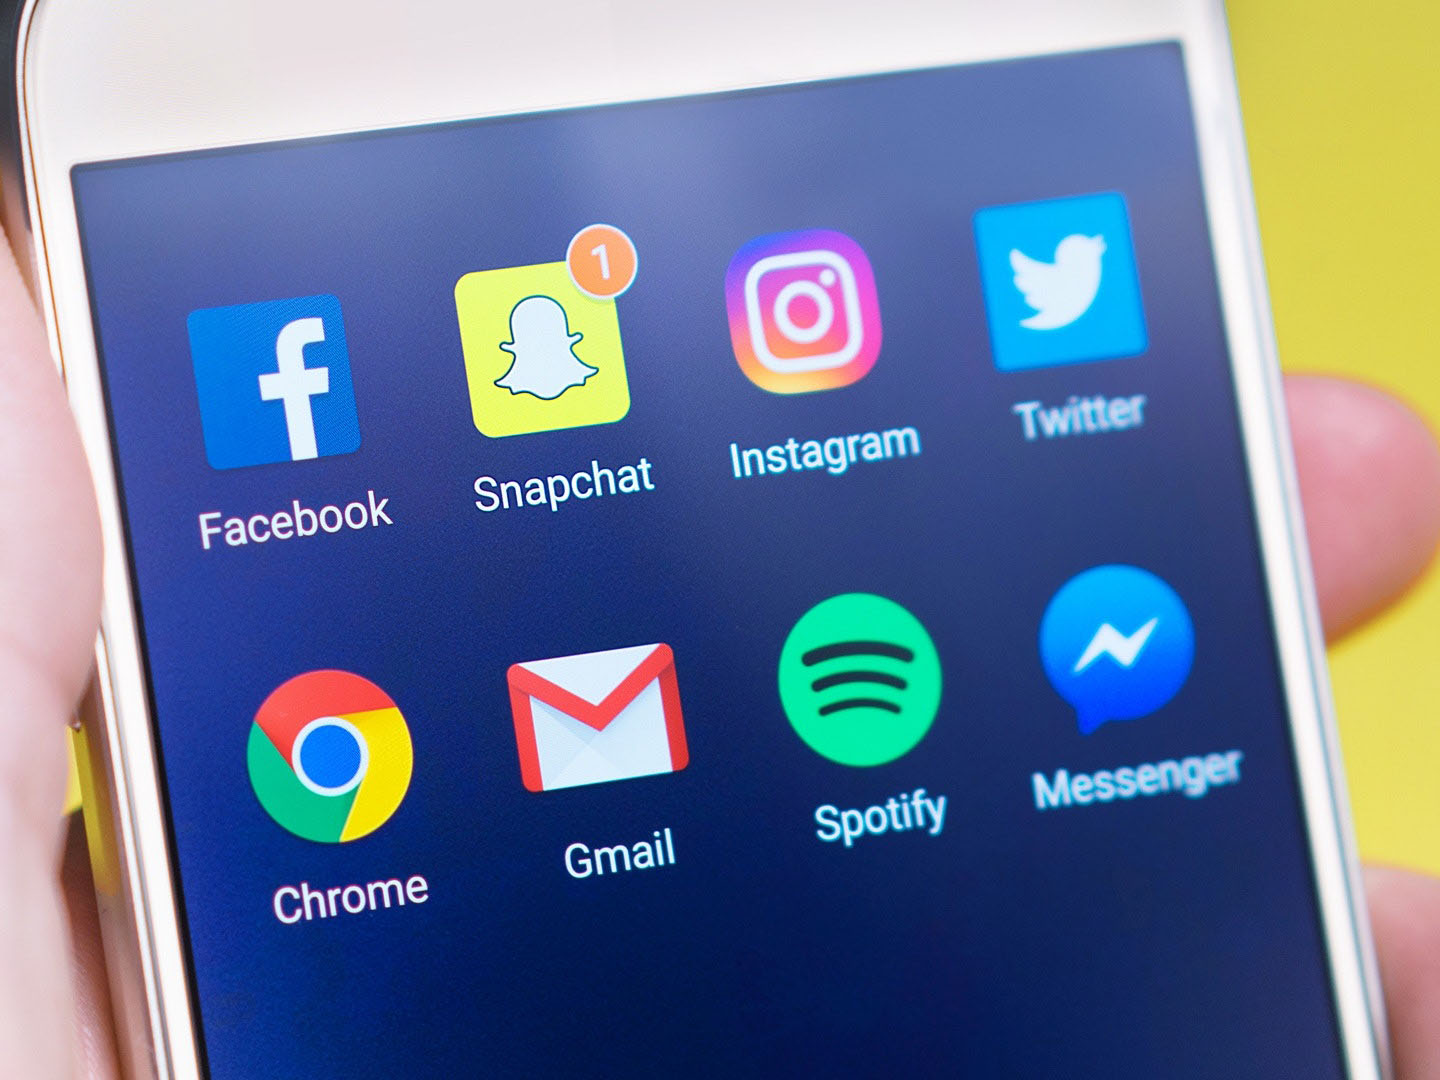 SOCIAL MEDIA CONTENT - IF YOU'RE TRYING TO GROW YOUR SOCIAL MEDIA FOLLOWING THERE'S NO FASTER WAY THEN HIGH QUALITY CONTENT.